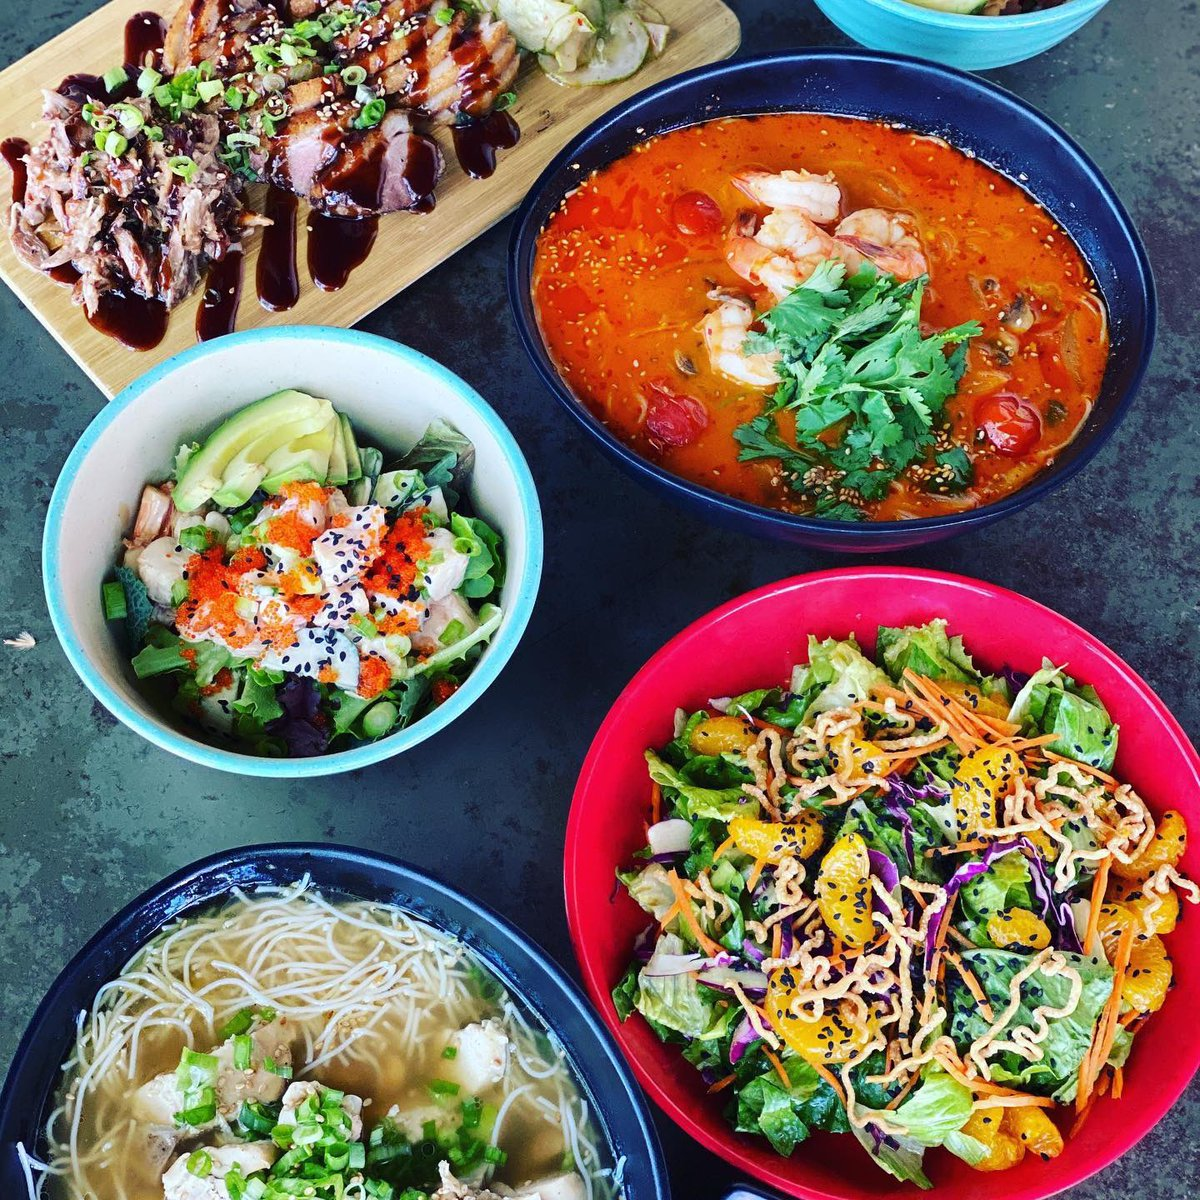 RT @NapaNoodlesInc #Napa  What are you having for dinner this weekend? Soup, #Poke, #salads, slow roasted meats?!Offering Dine in, #patio seating, curbside pick up, & #delivery through #DoorDash & #Uber Eats! #asianfood  #ramen   #visitnapavalley #donapa #takeout #dinein https://t.co/X8BTBKgXqN